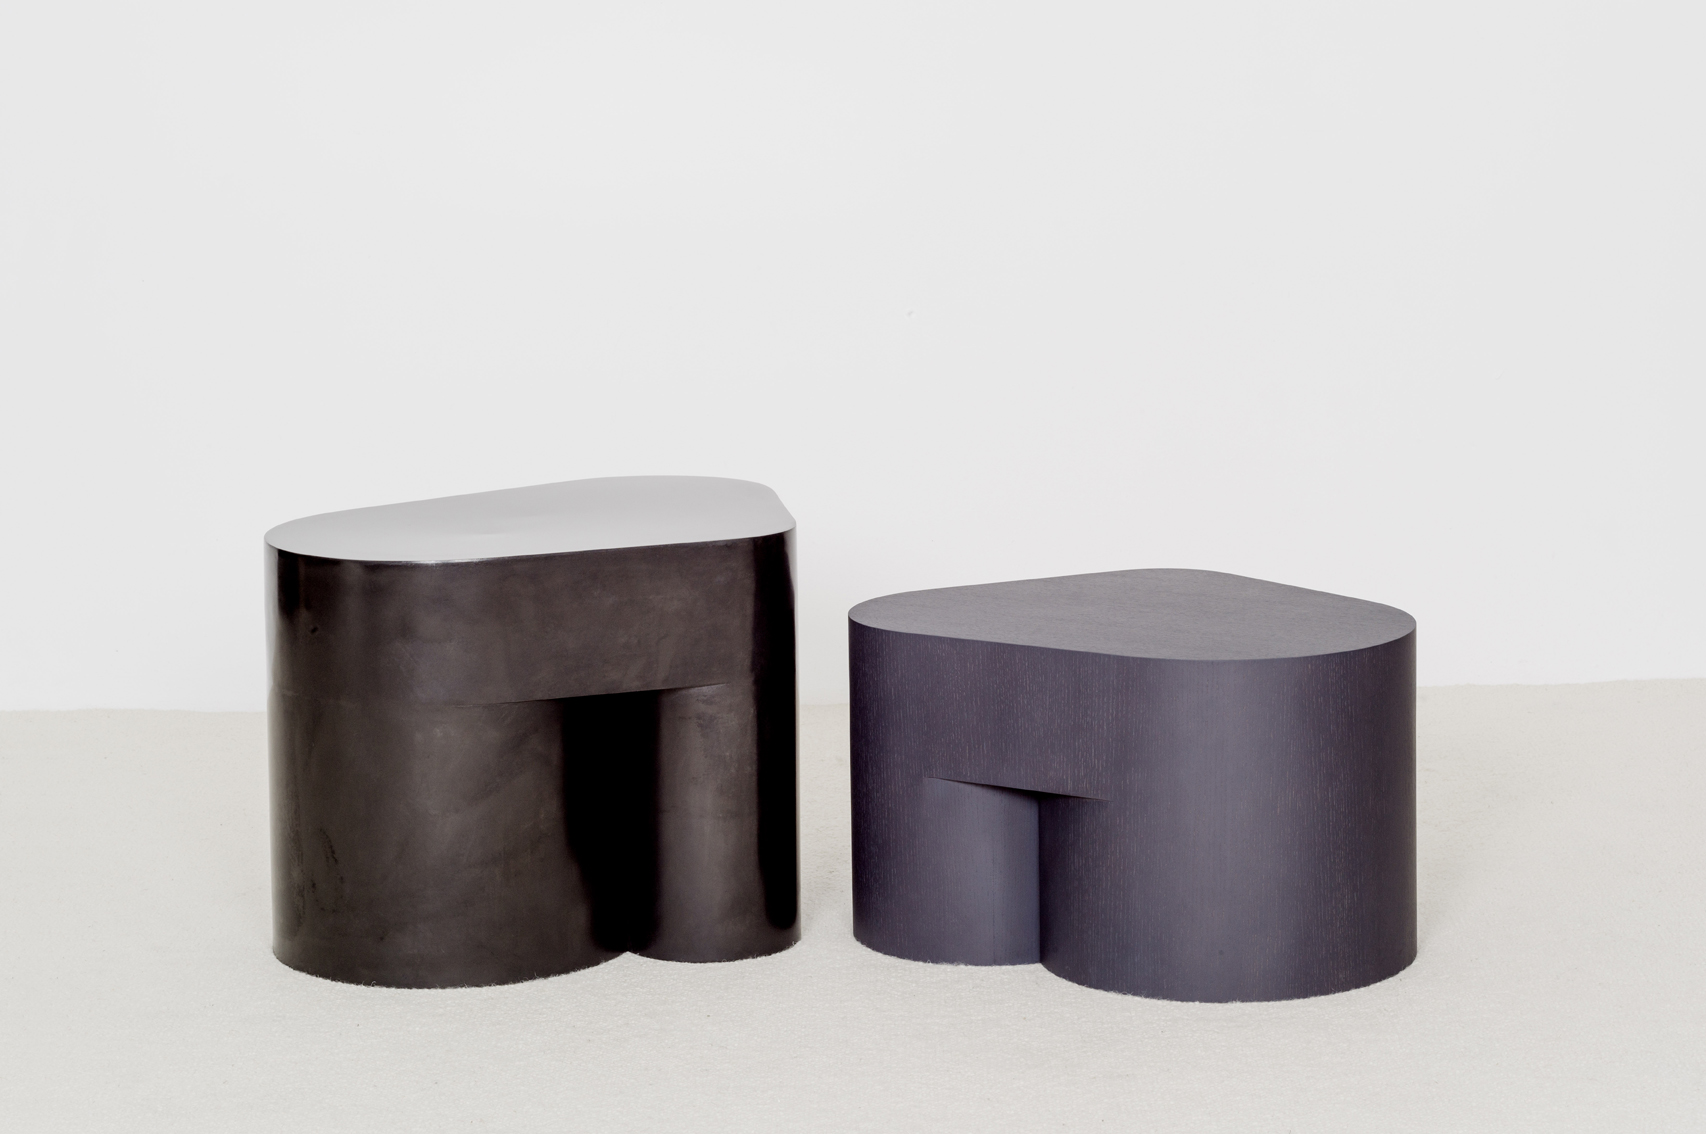 Doo Side Table Doo Low Table - Christophe Delcourt